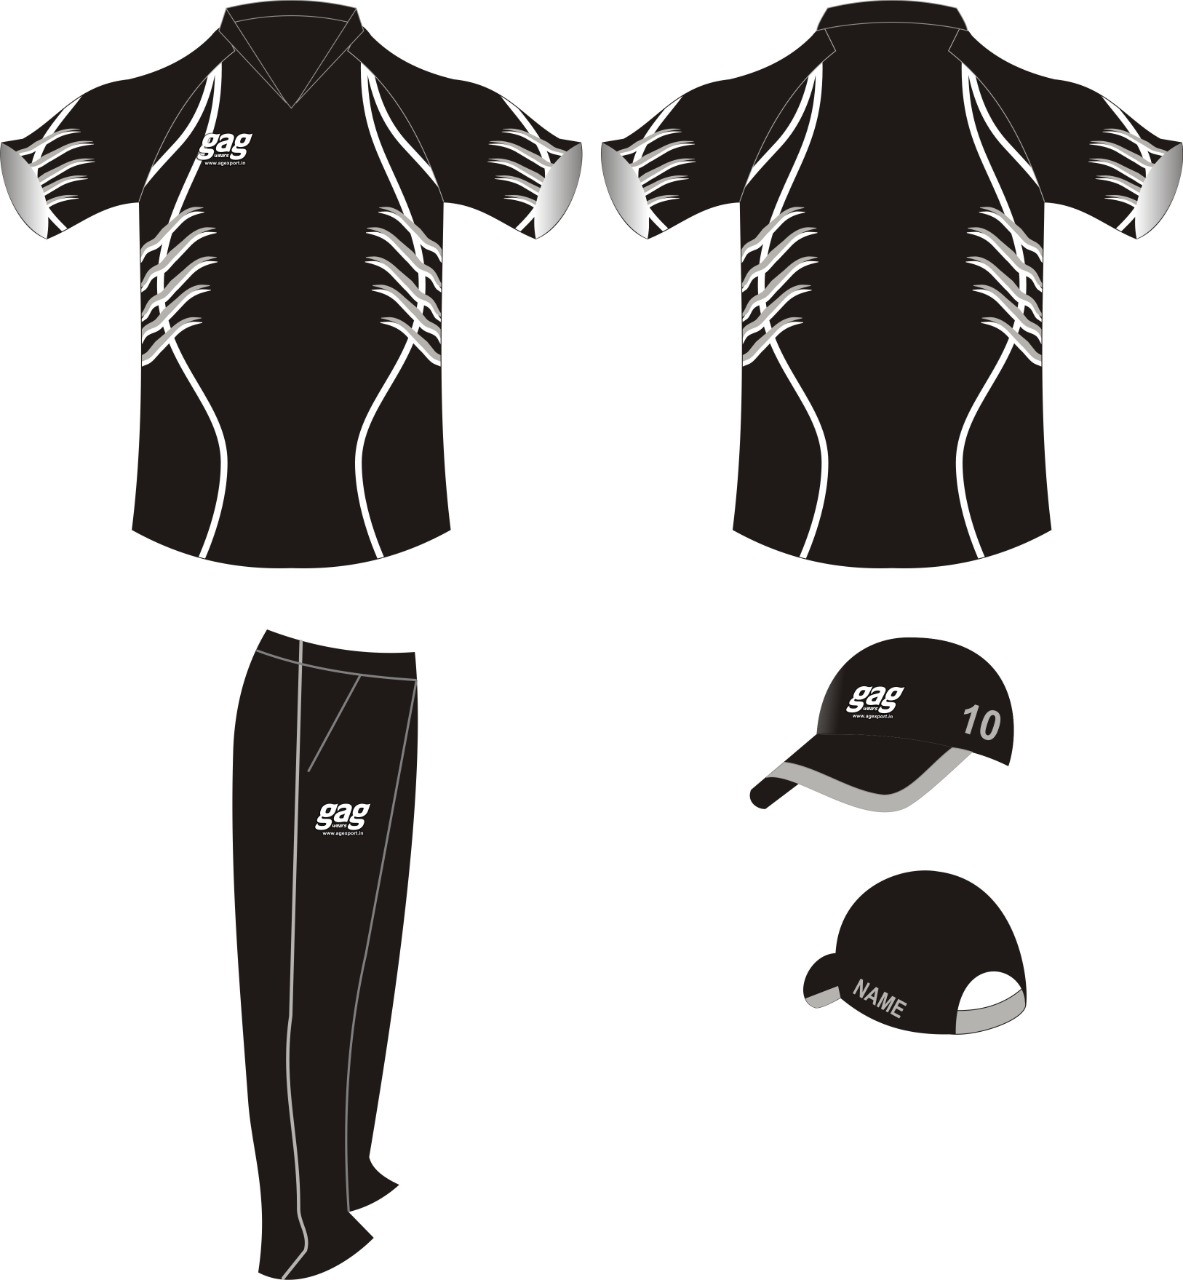 Custom Cricket Jerseys Manufacturers in Jalandhar in Australia